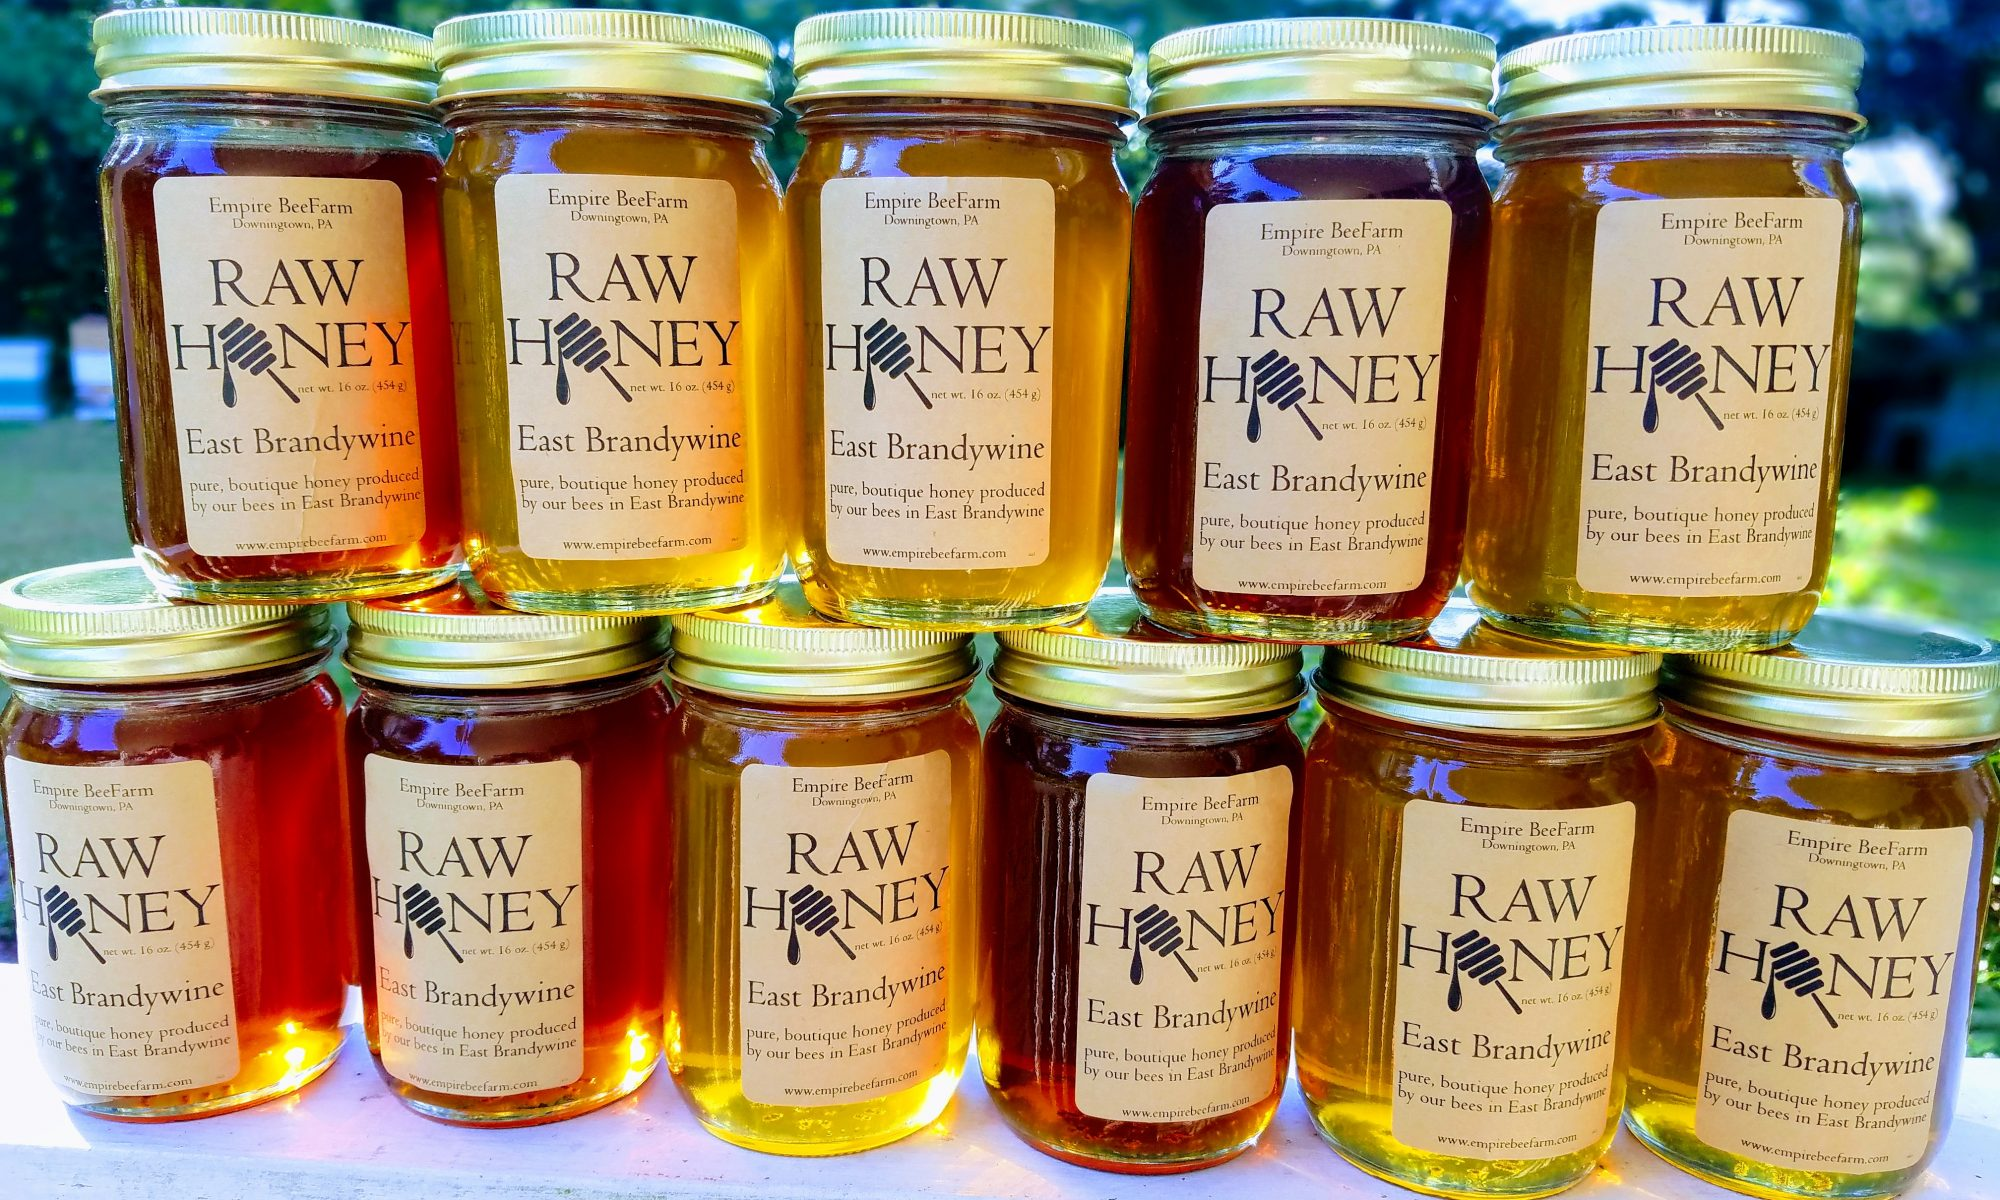 East Brandywine Honey